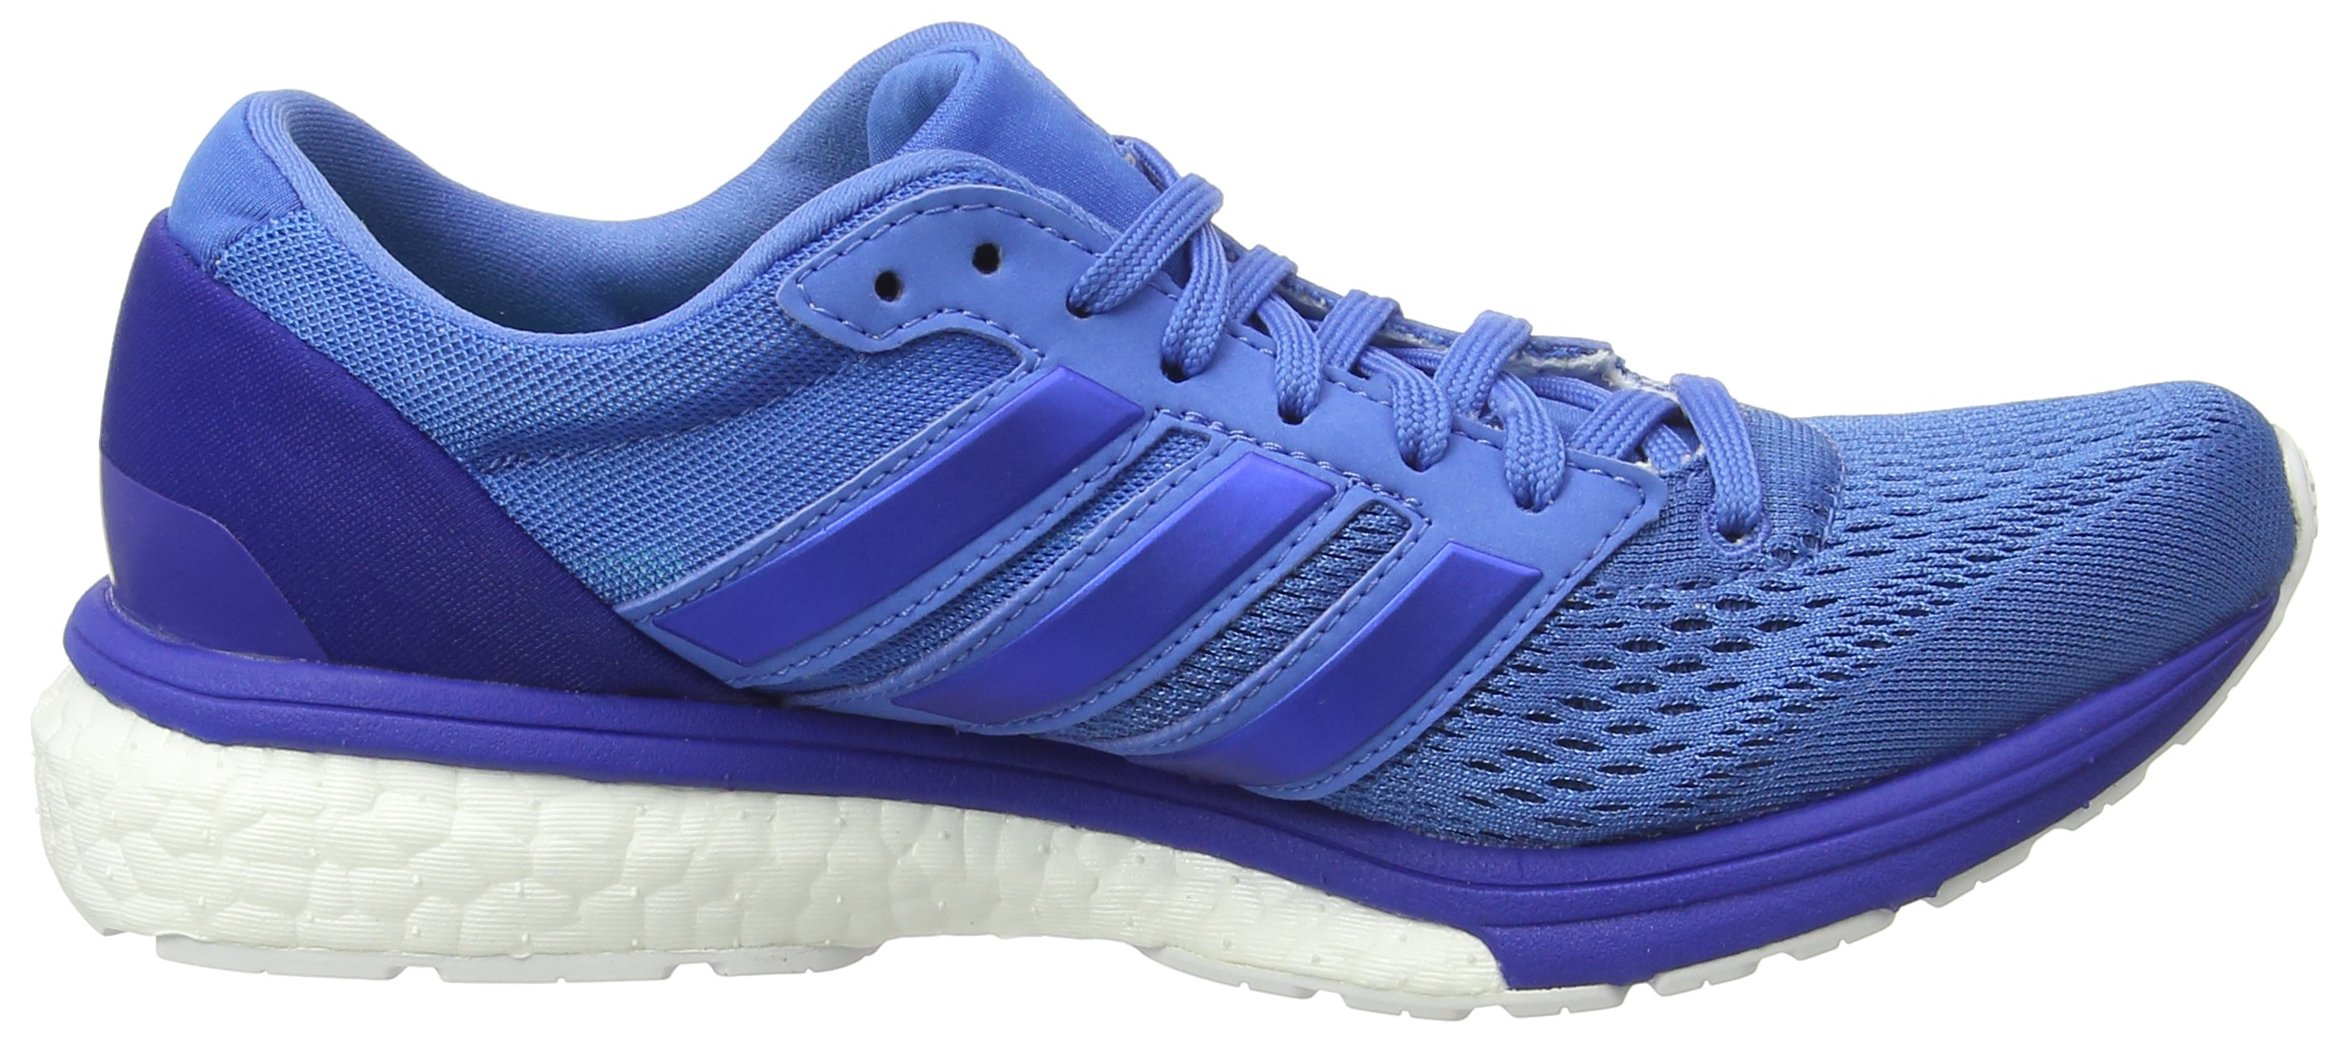 817ajfMJQLL - adidas Women's Adizero Boston 6 Competition Running Shoes